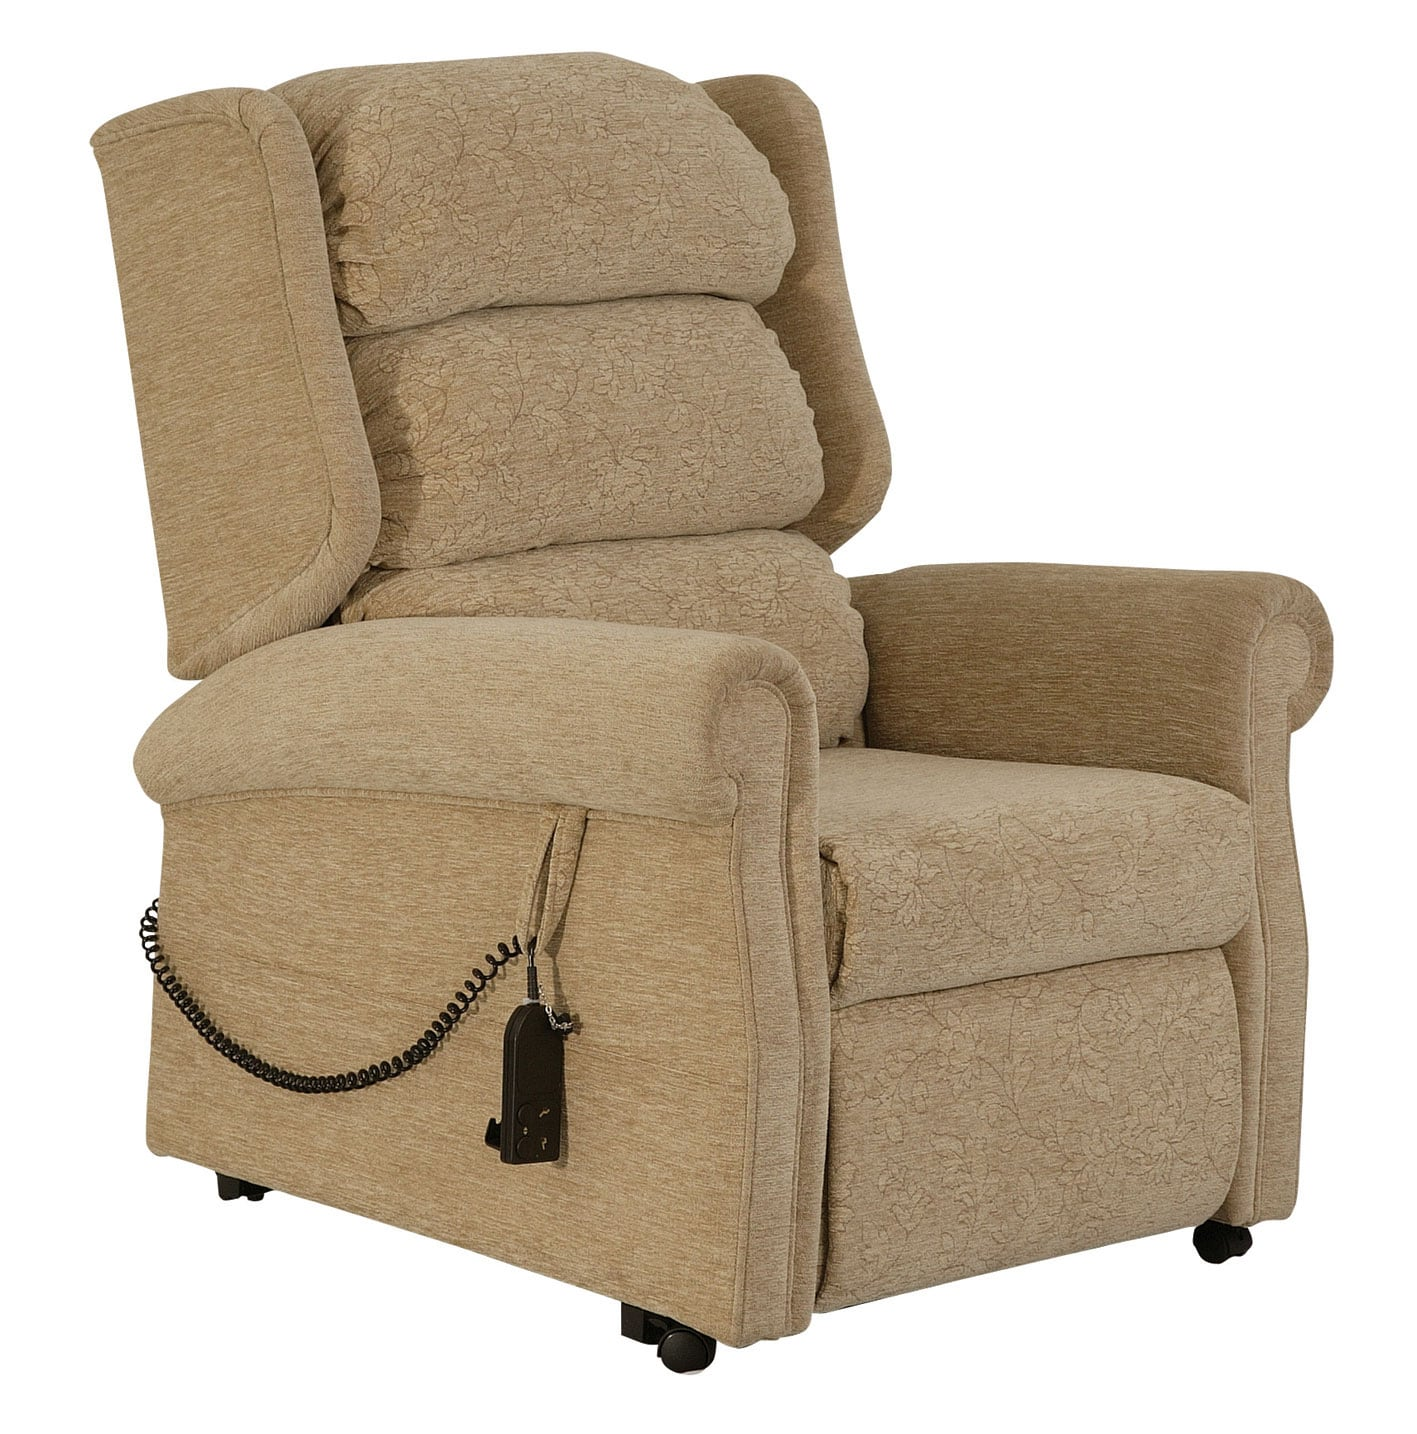 The Royal Riser Recliner